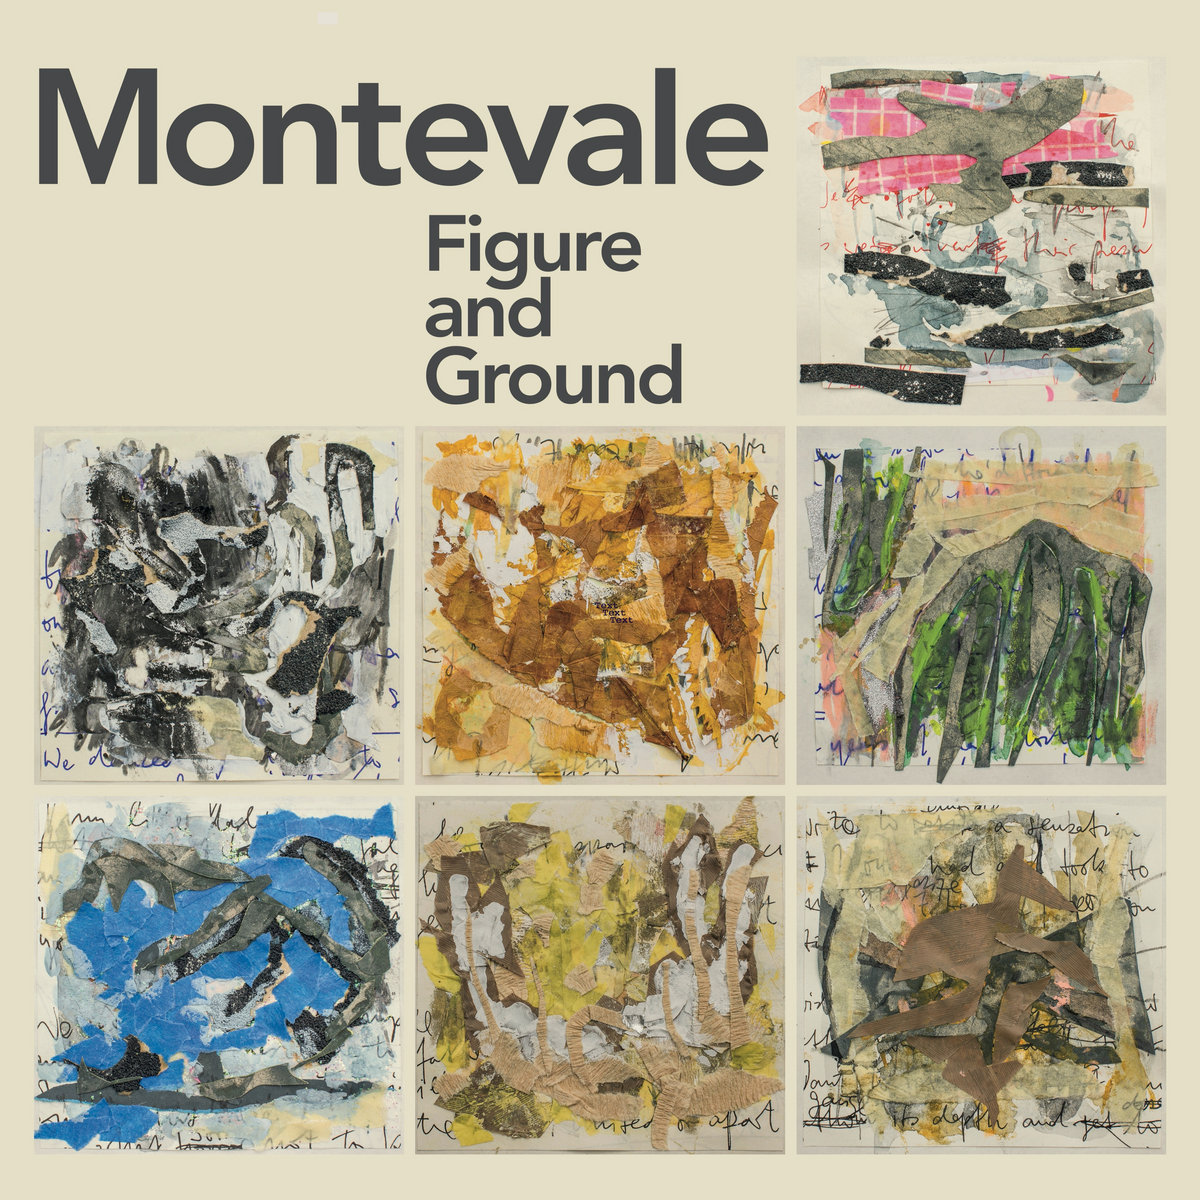 Montevale - Figure and Ground